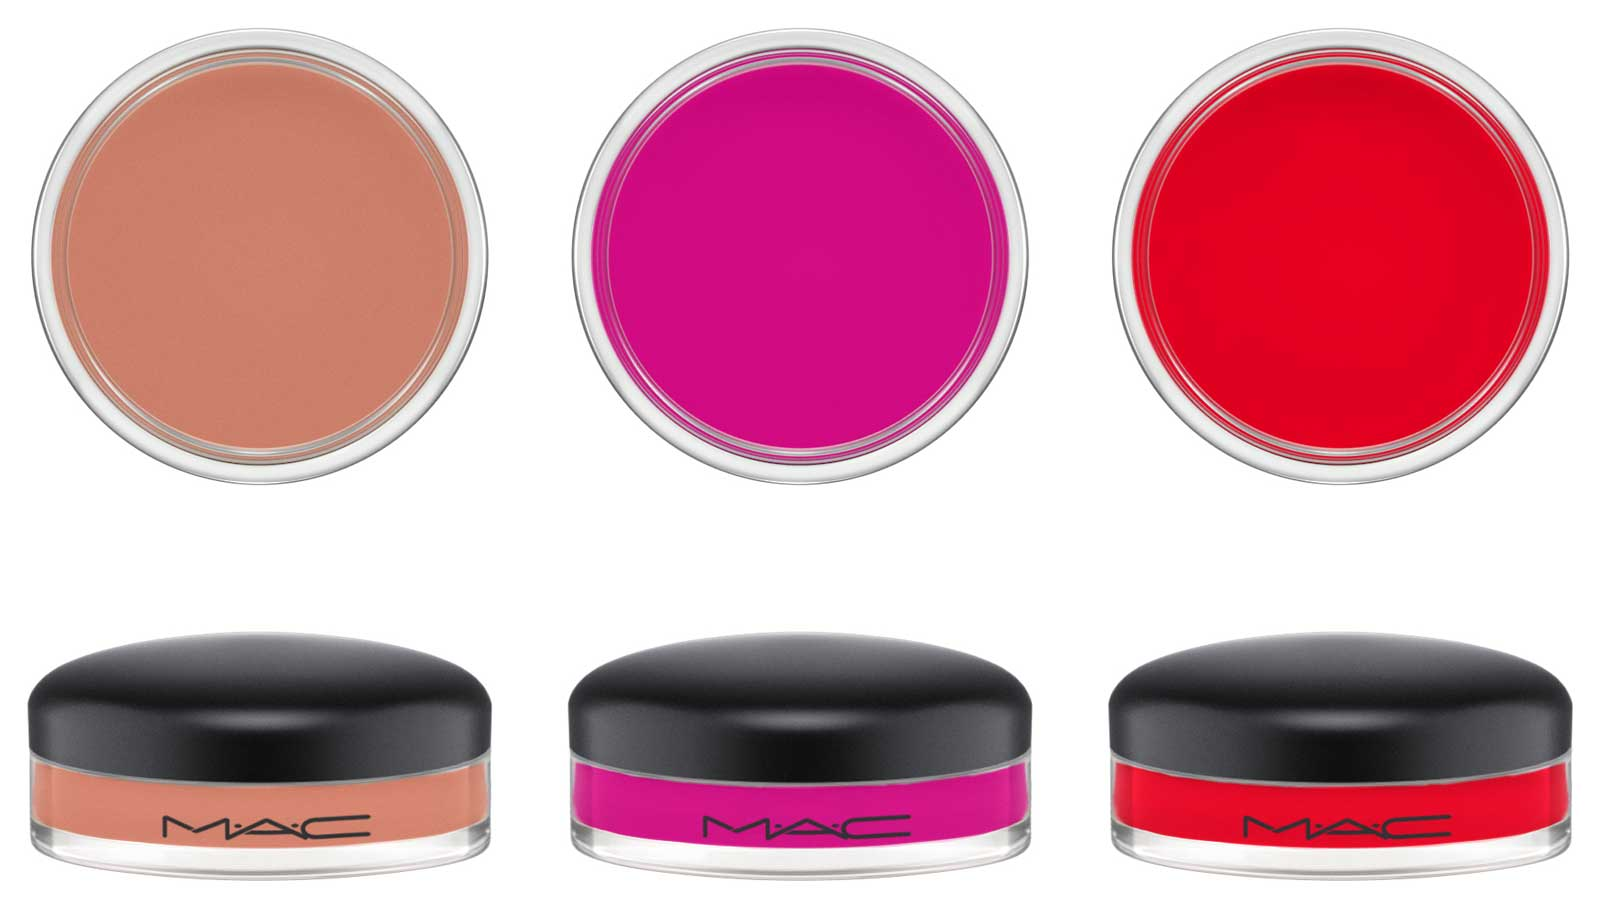 2-mac-crystal-glaze-gloss-work-it-out